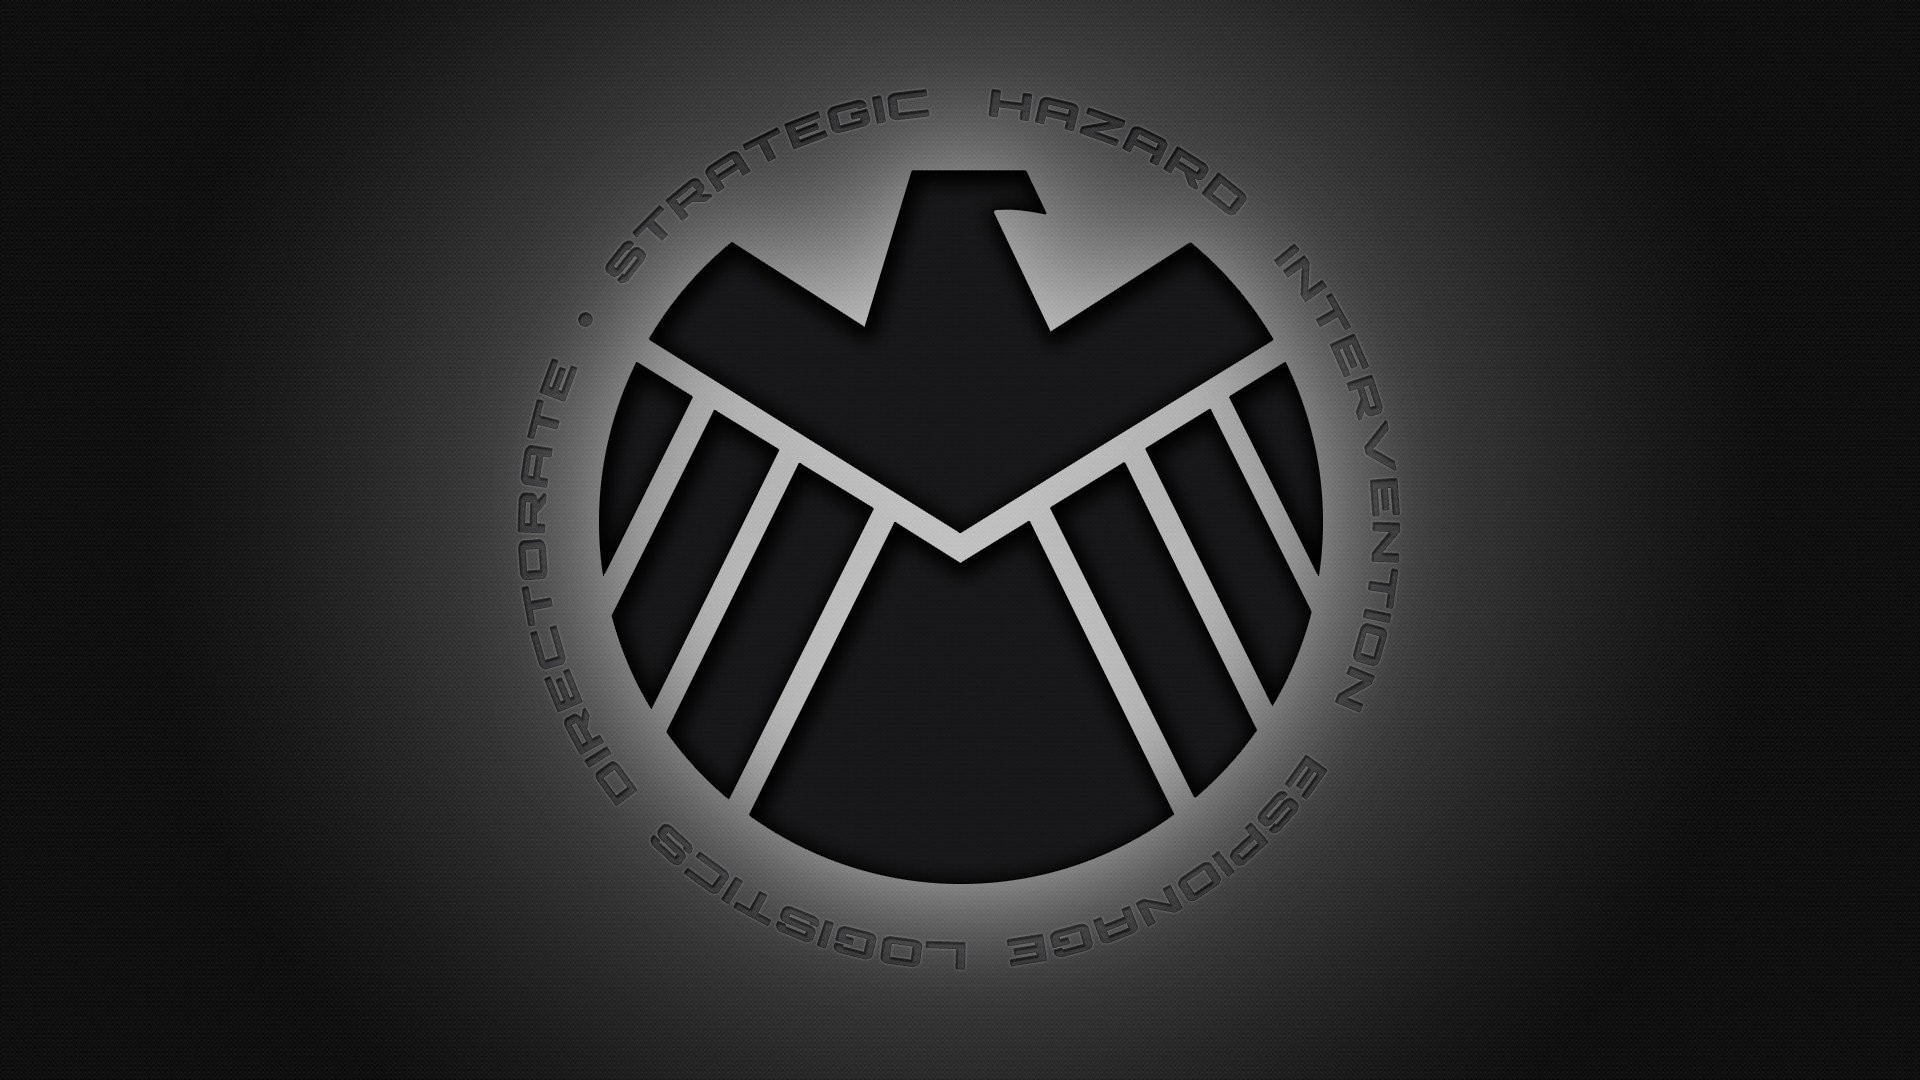 2016 Agents Of Shield, HD Tv Shows, 4k Wallpapers, Images ...